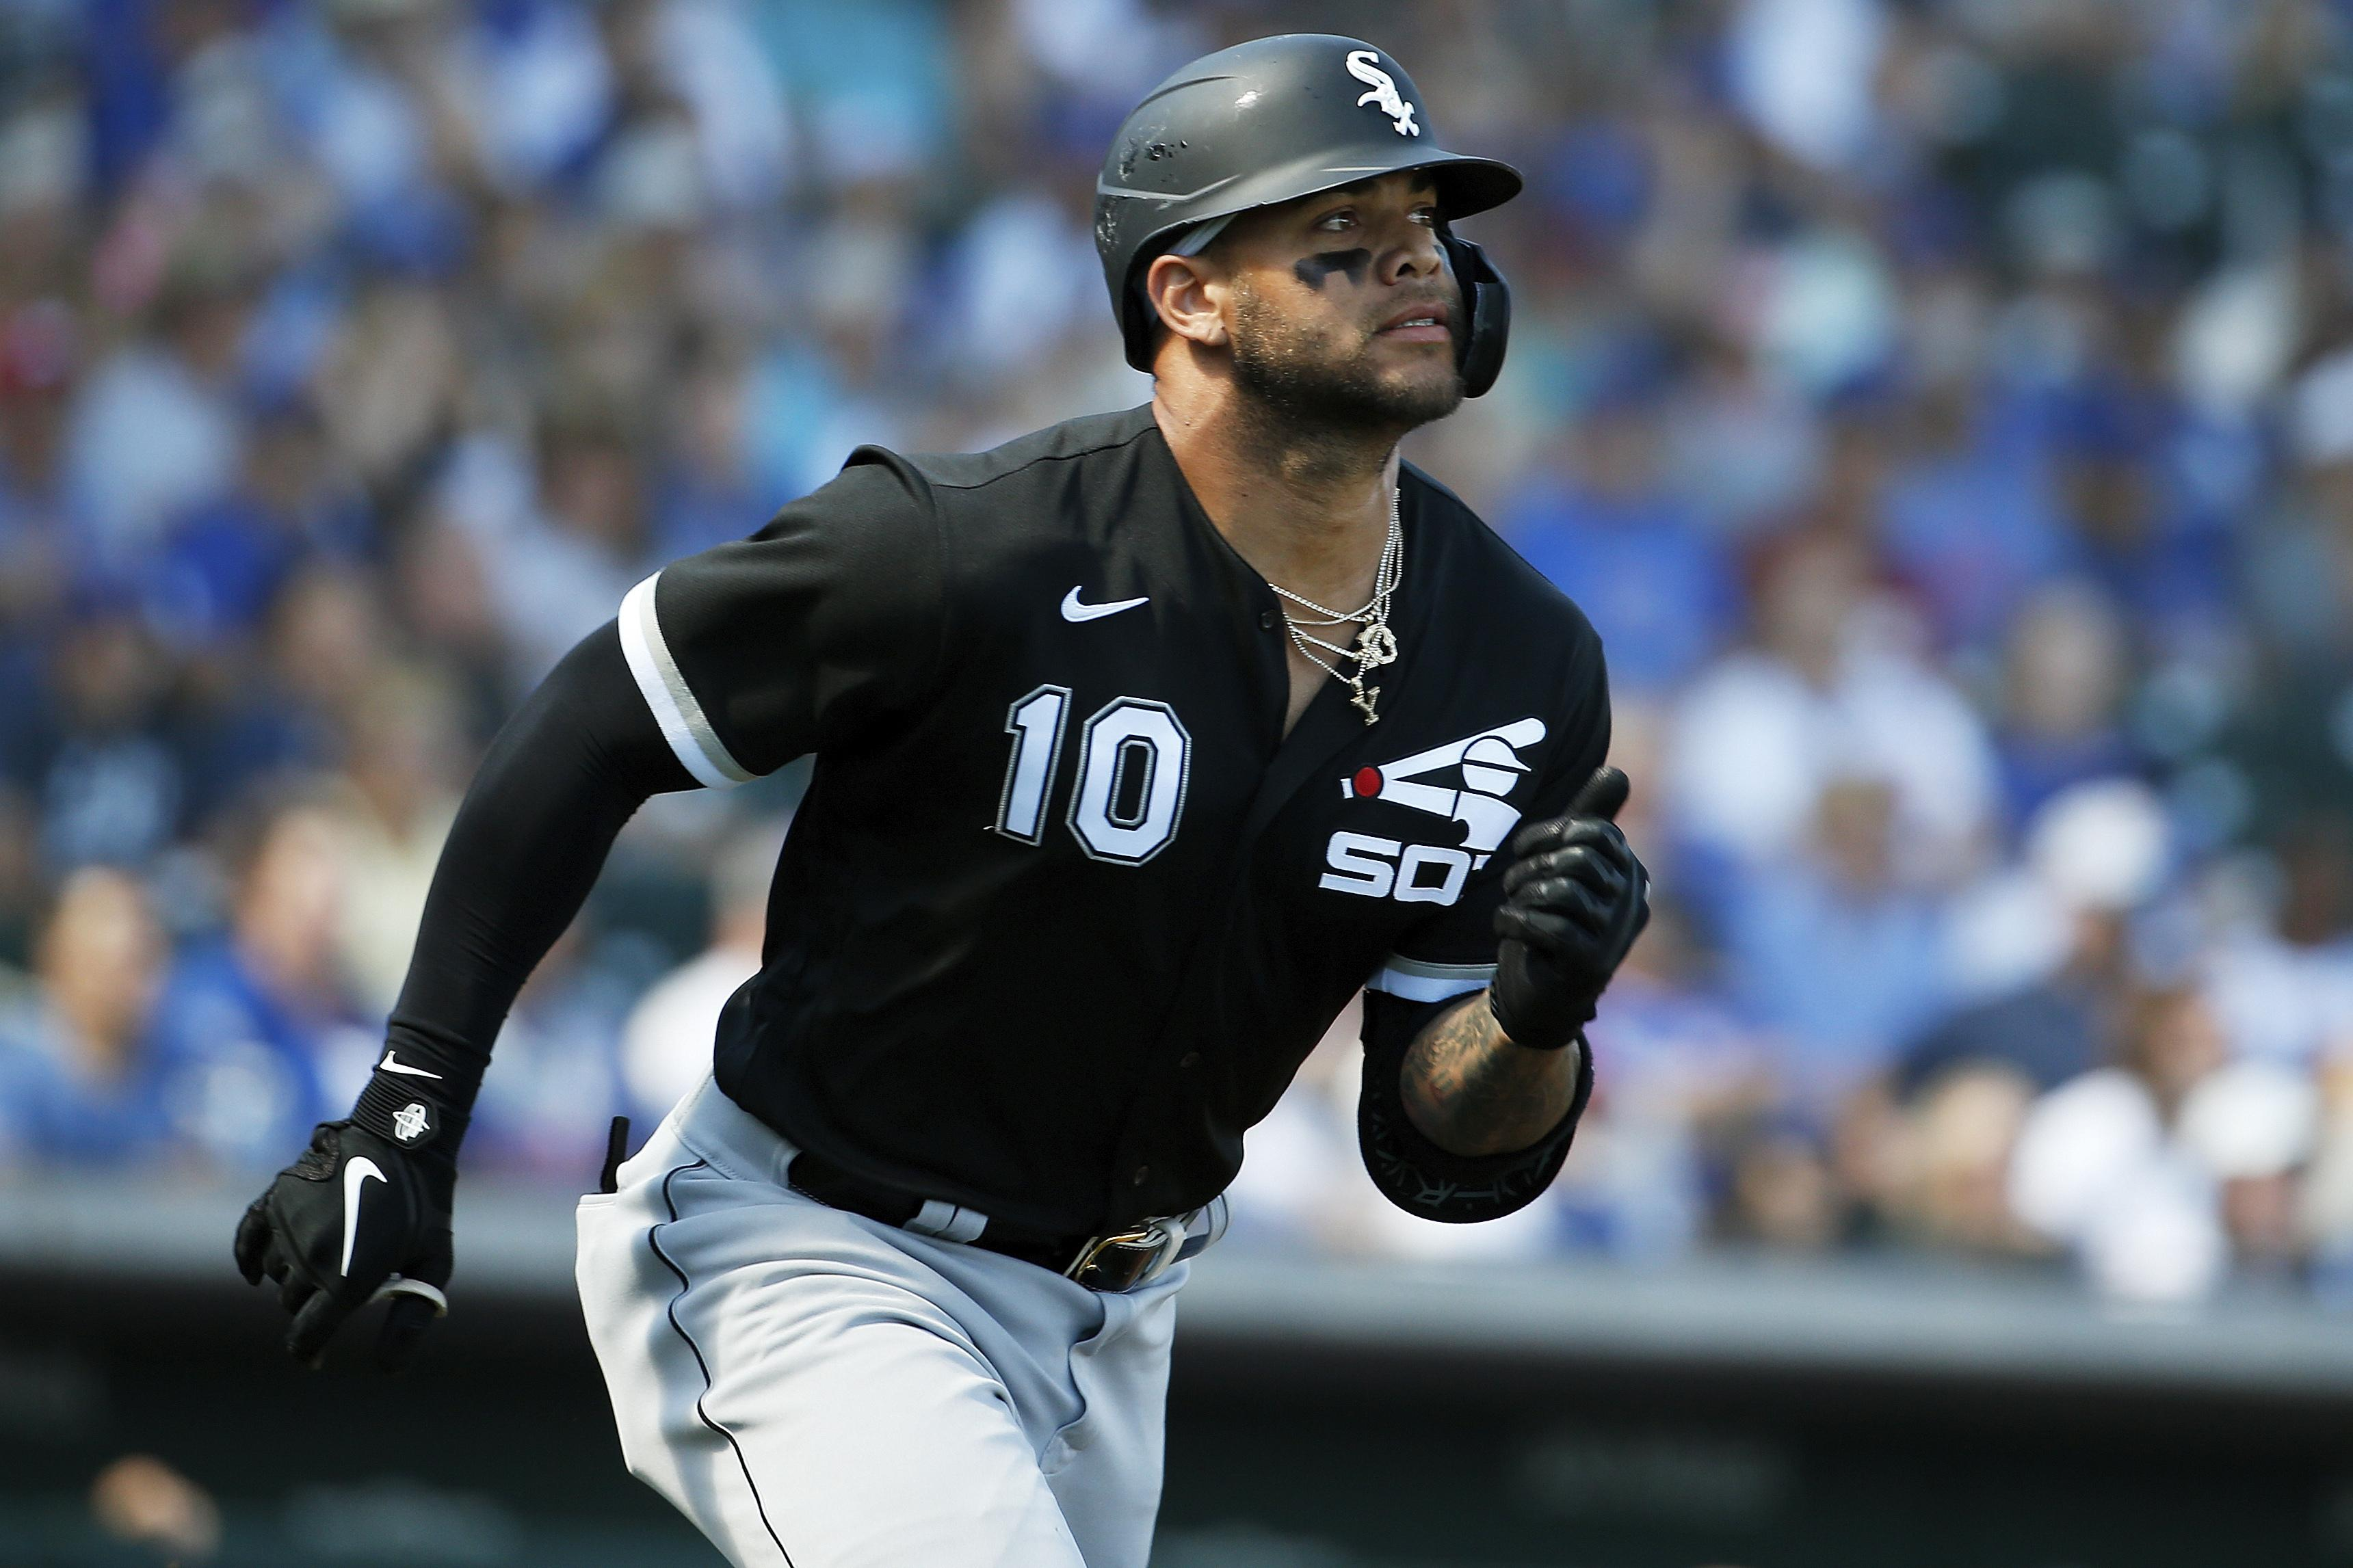 yoan moncada injured list